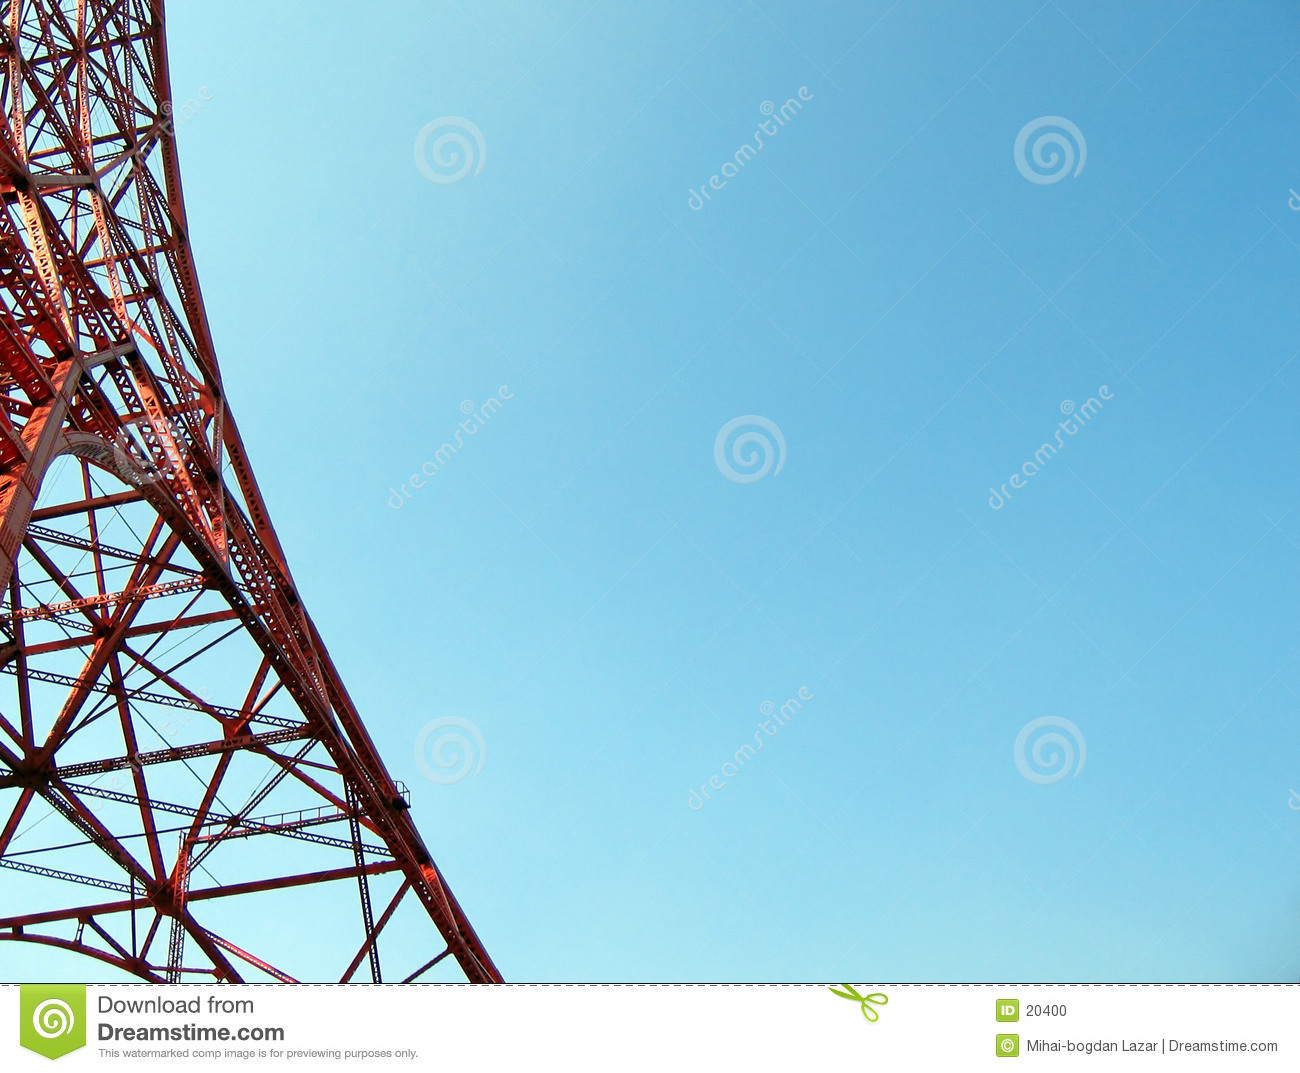 Structural Background Stock Photo - Image: 20400